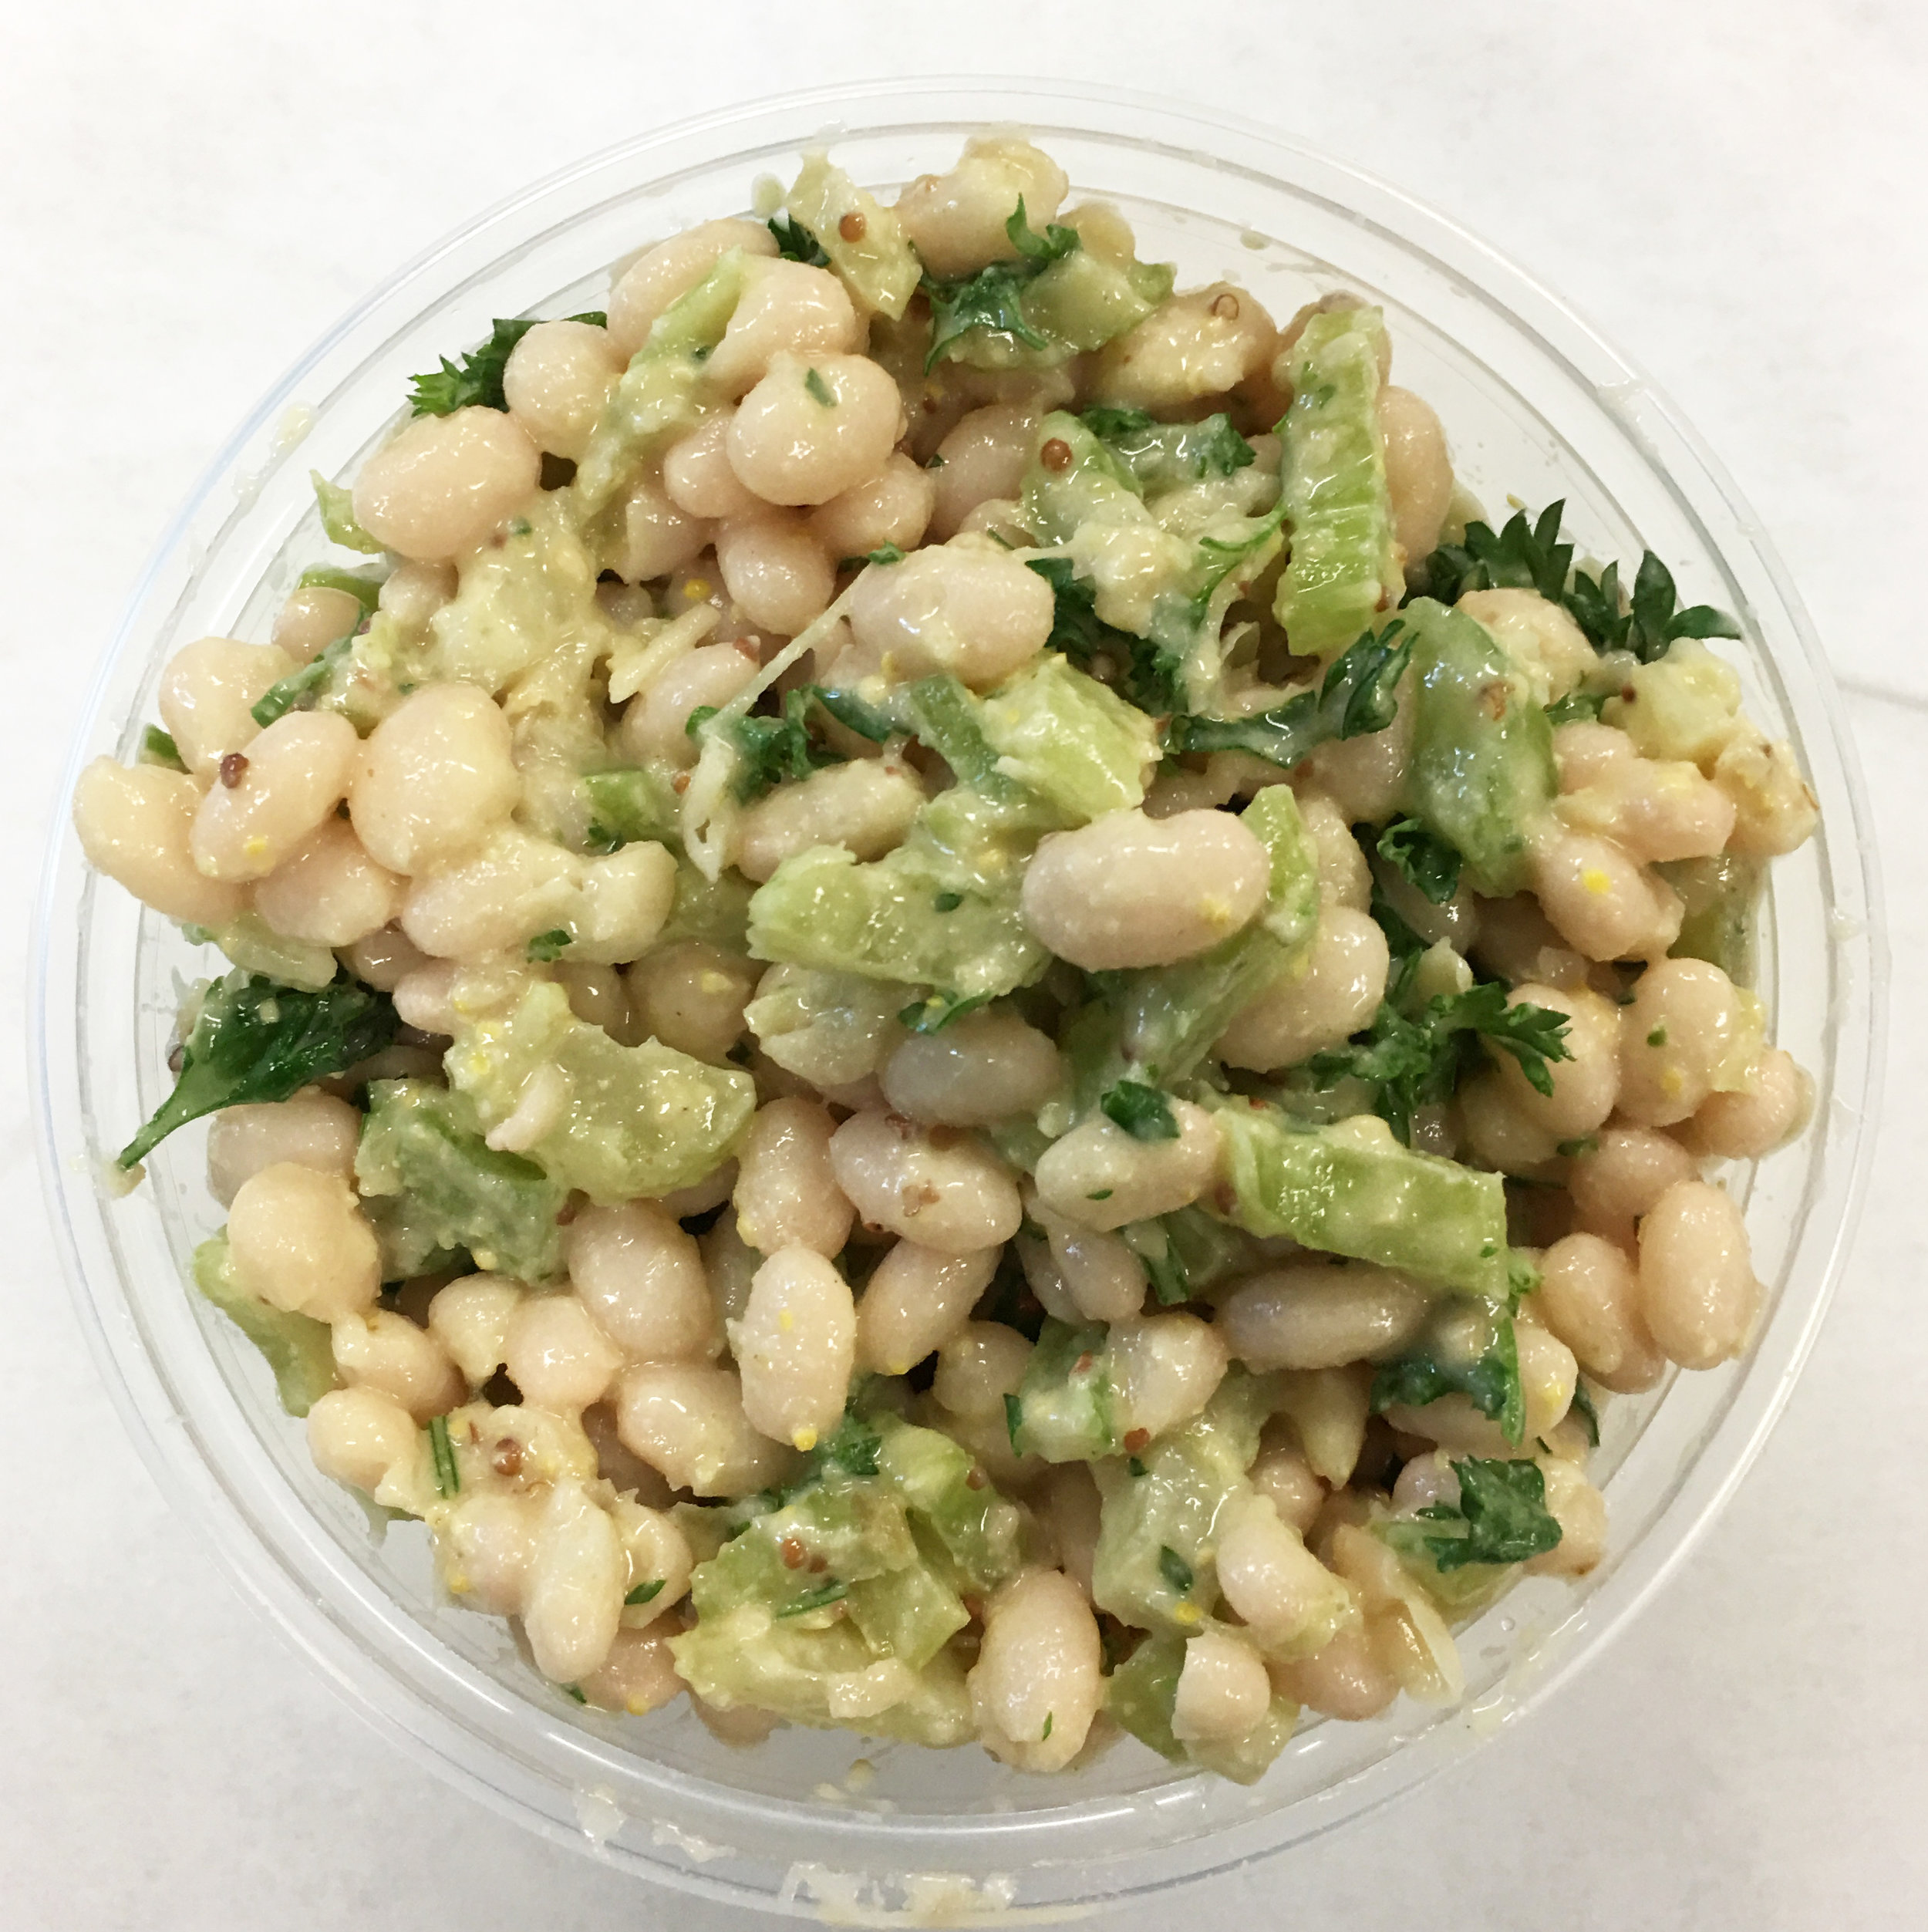 Navy beans with celery, parsley, lemon and tahini.